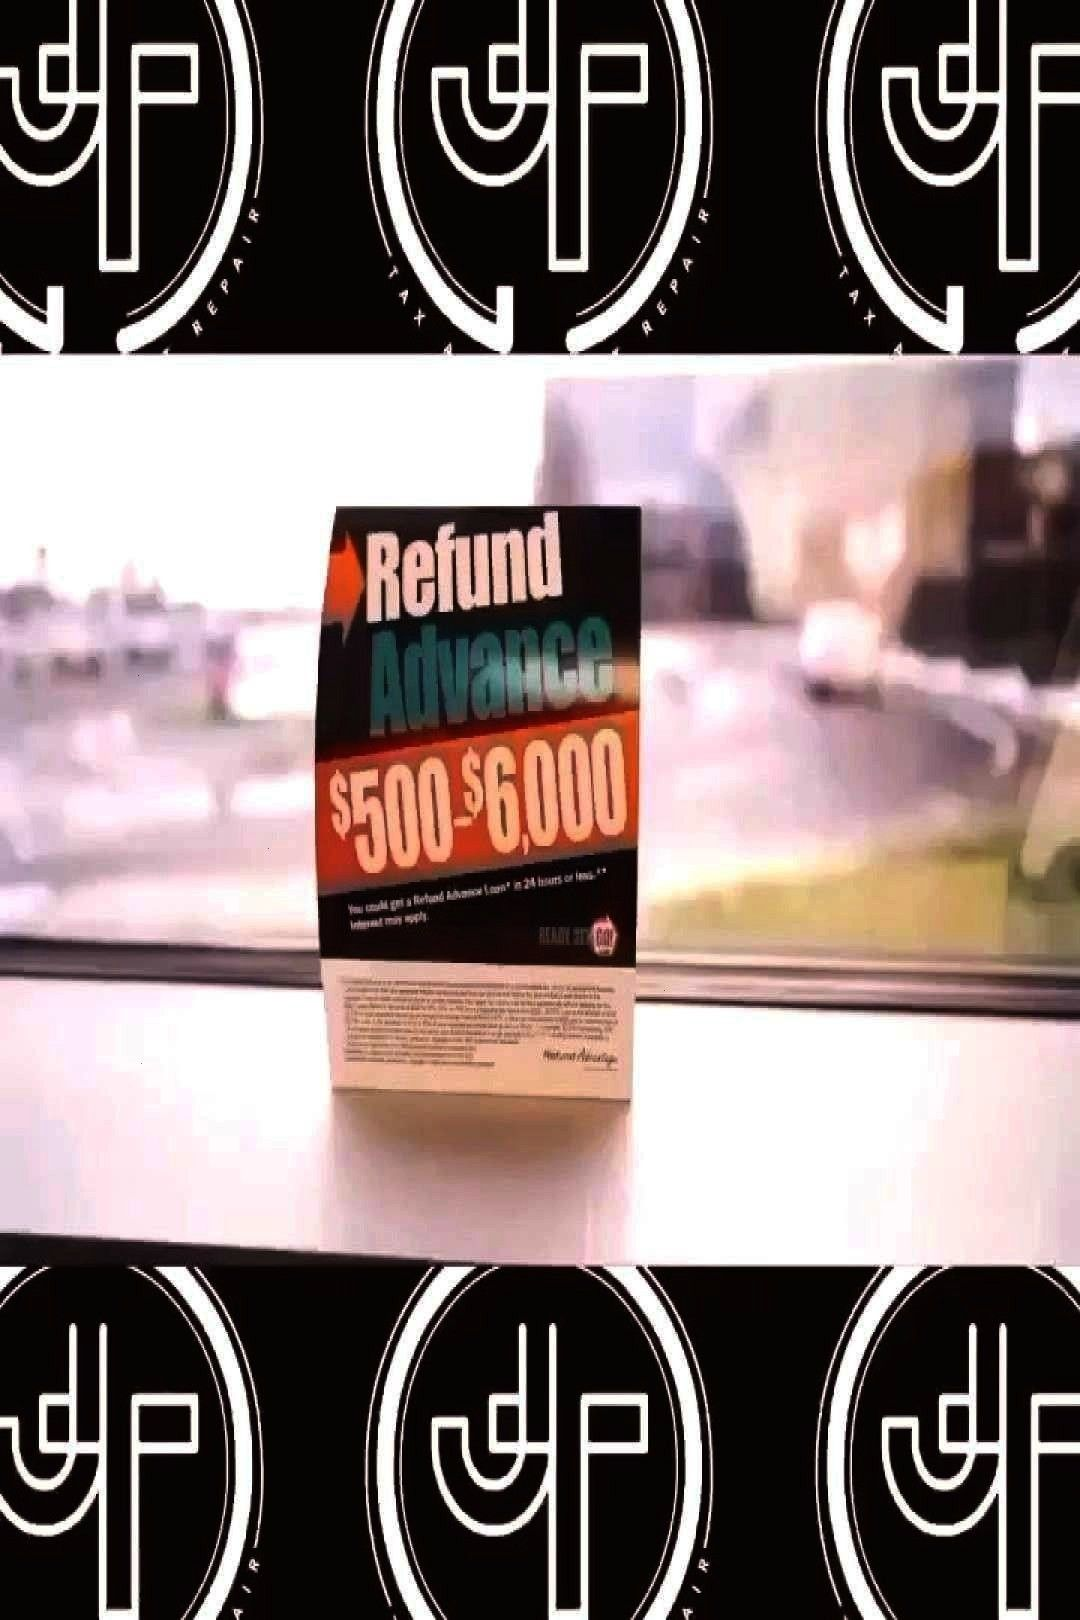 6000 Advance refund Loans begin January 12th CYou can find Tax help and more on our websitePay Zero Upfront 6000 Advance refund Loans begin JanuarPay Zero Upfront 6000 Ad...